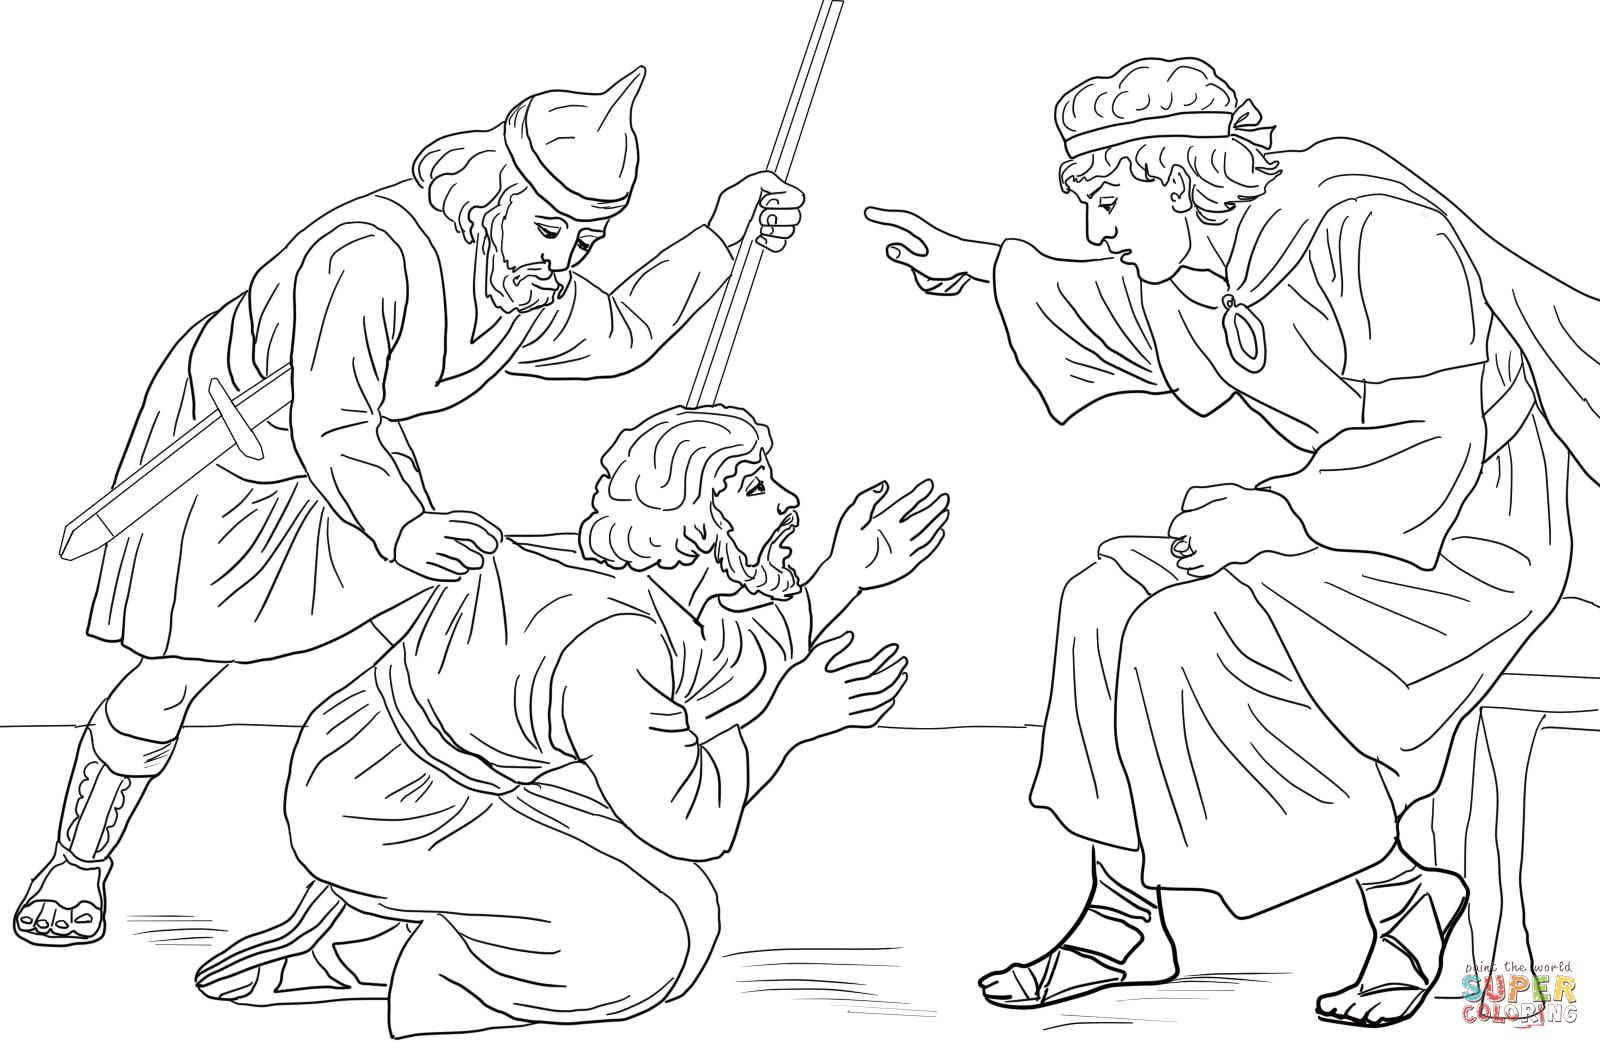 Coloring Page For Parable Of The Unmerciful Servant 1600 1050